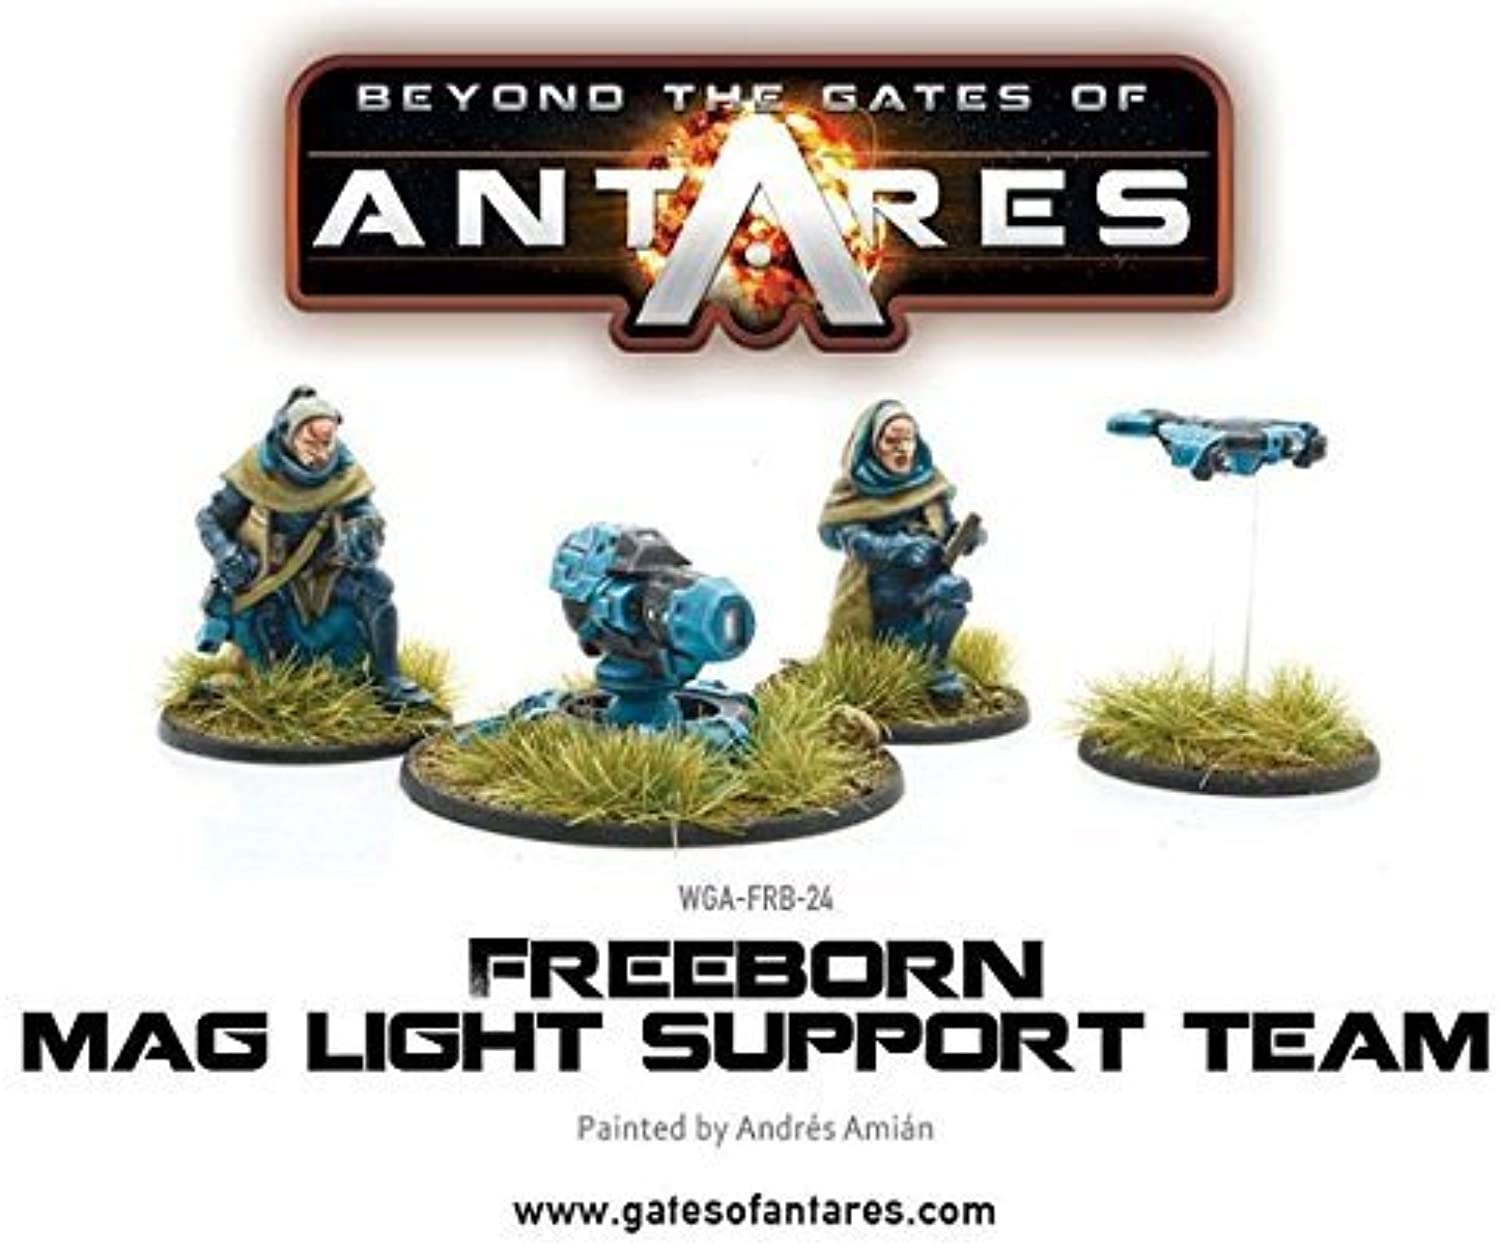 Gates of Antares  Freeborn Support Team with Mag Light support